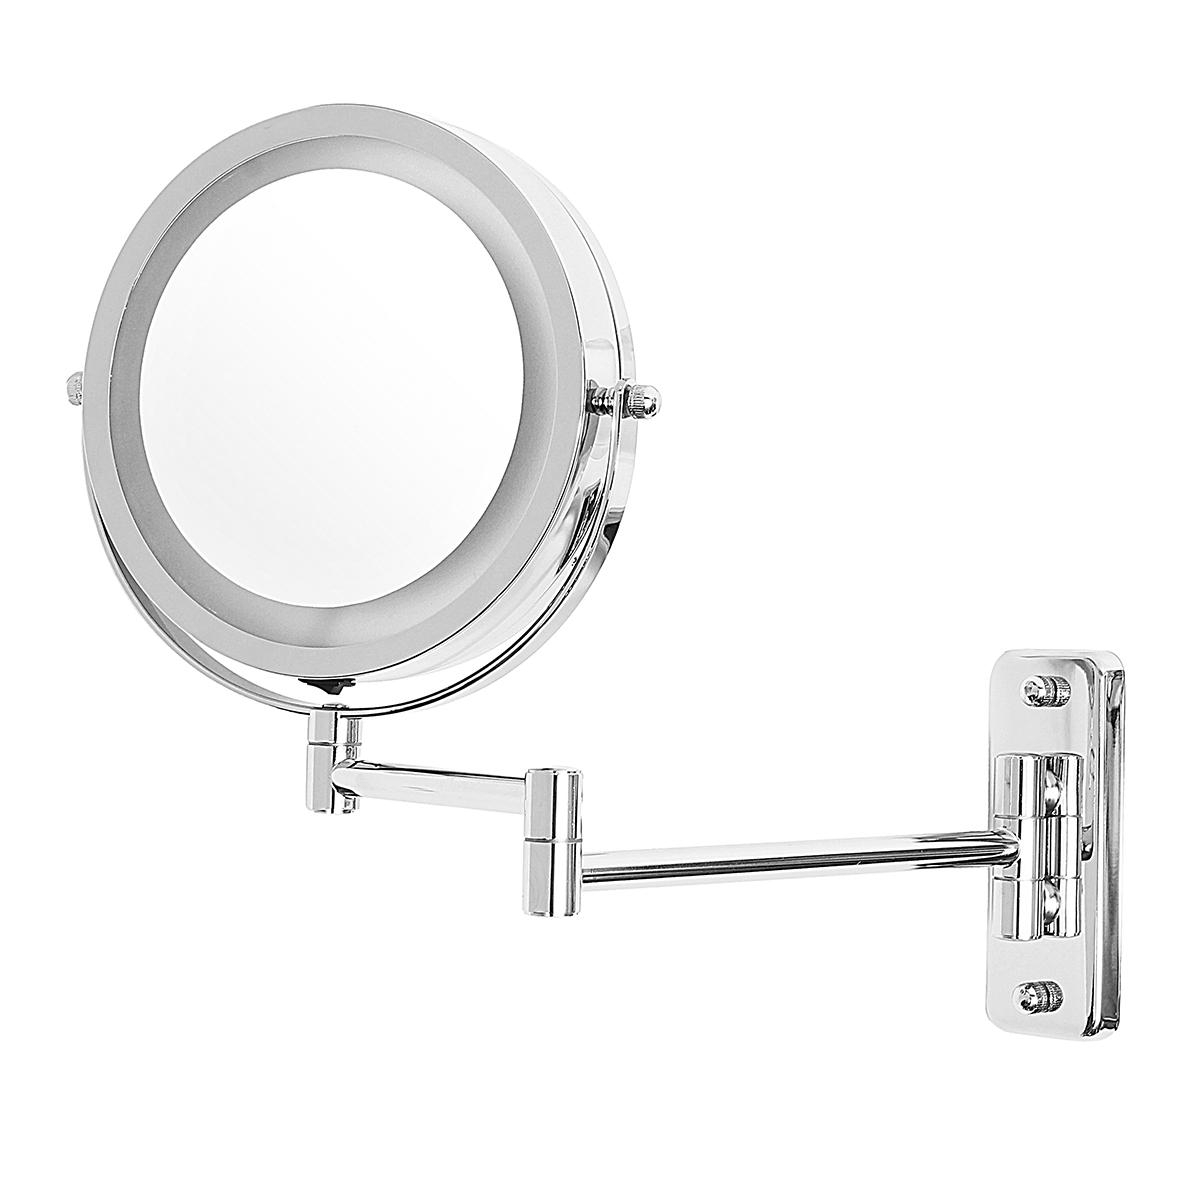 "7"" Led Lighted Makeup Cosmetic Mirror Bathroom Flexible Floding Adjustable  Wall Mounted Led Mirrors In Preferred Adjustable Wall Mirrors (View 3 of 20)"